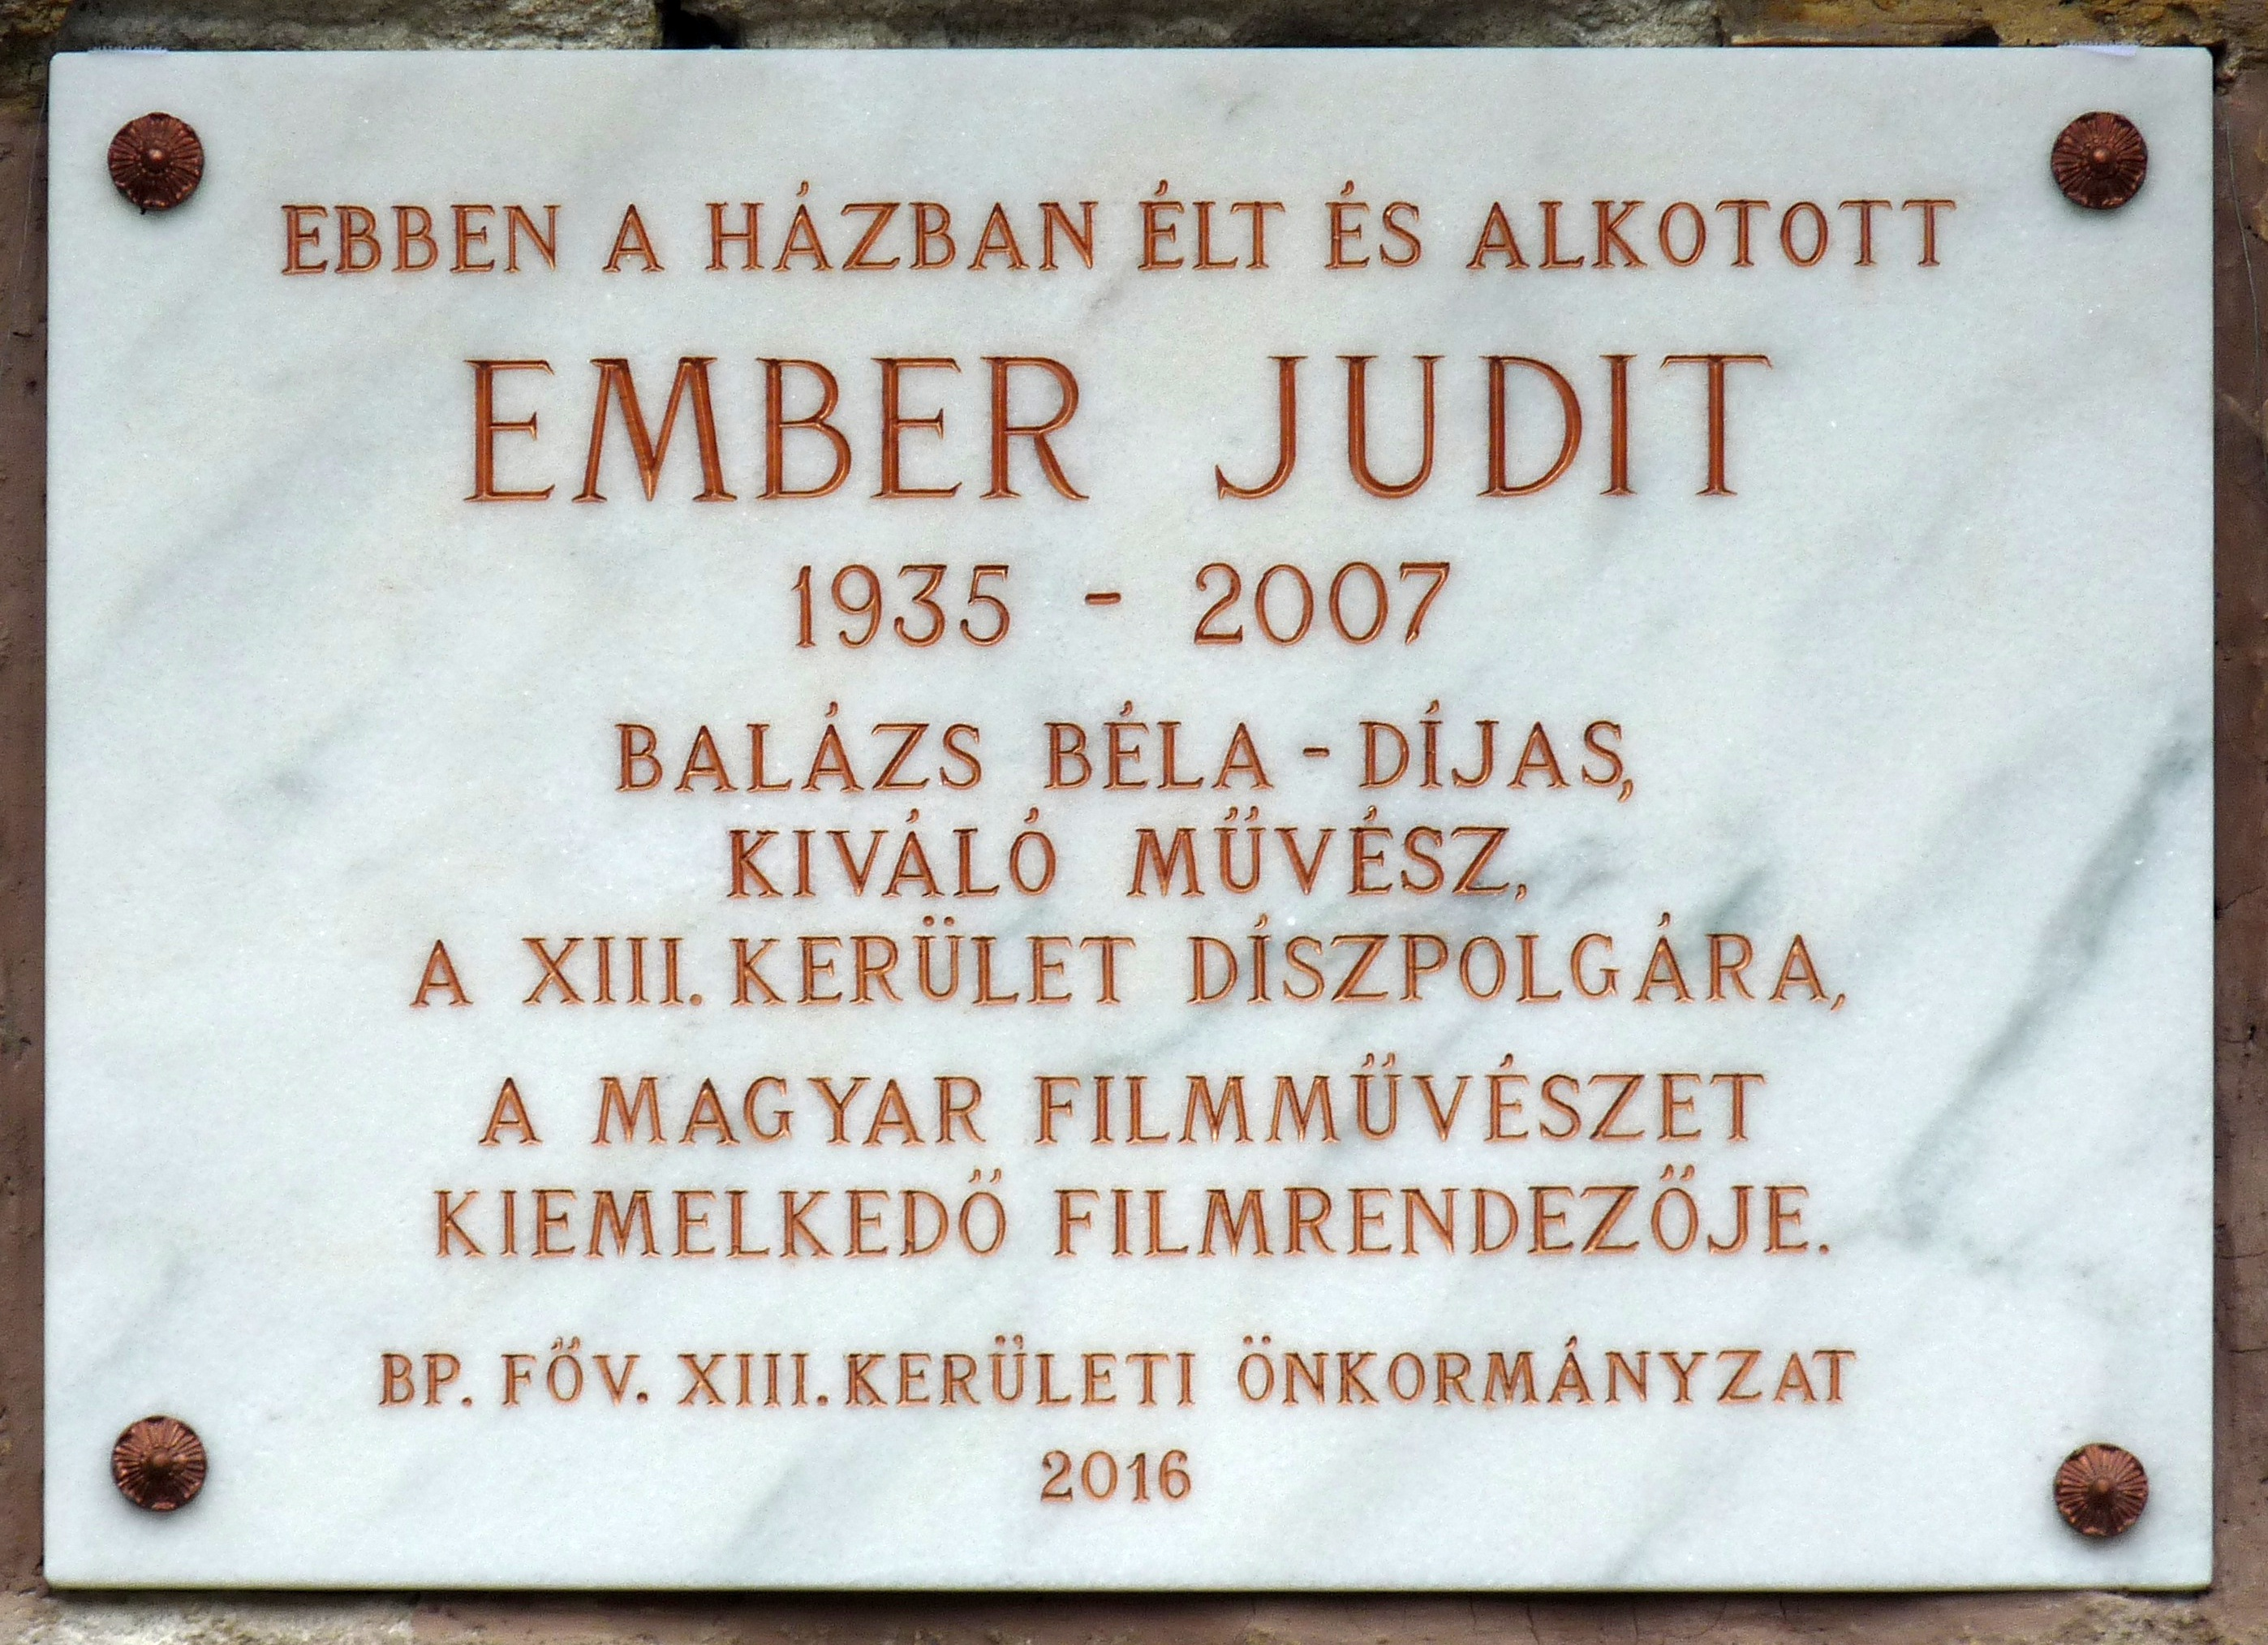 Memorial tablet for Judit Ember.